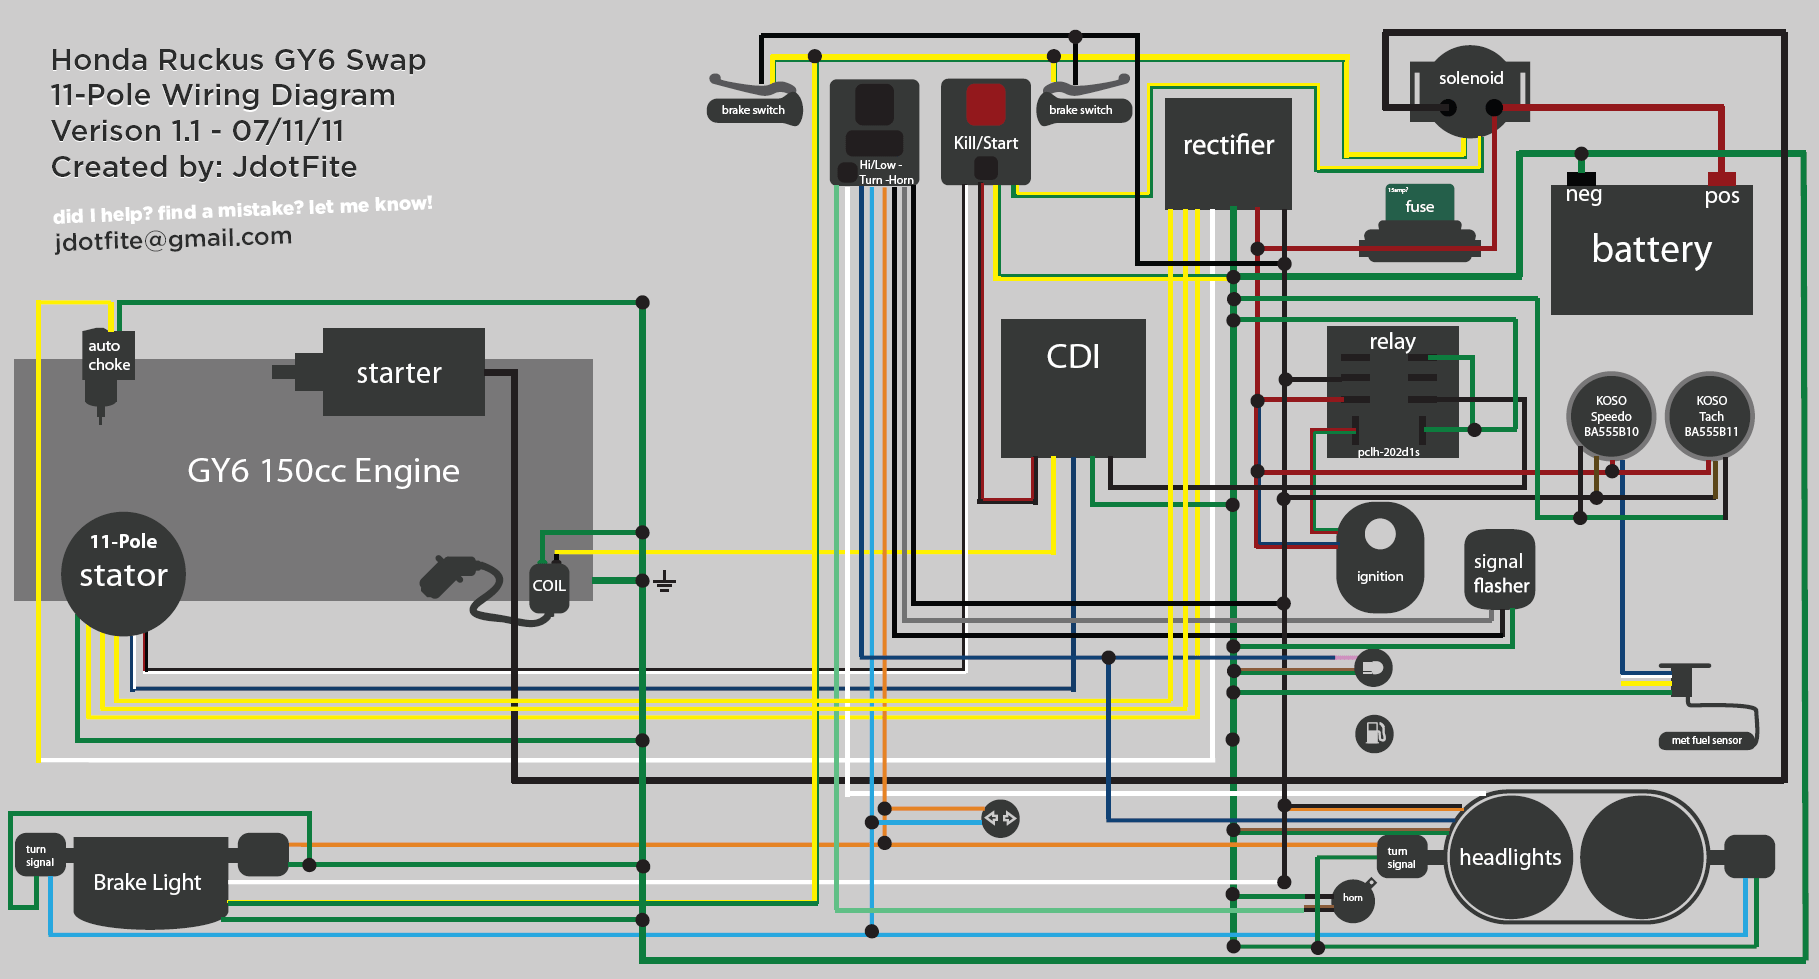 ruckus gy6 wiring diagram gy6 stator wiring gy6 engine wiring \u2022 wiring diagrams j squared co scooter ignition wiring diagram at eliteediting.co